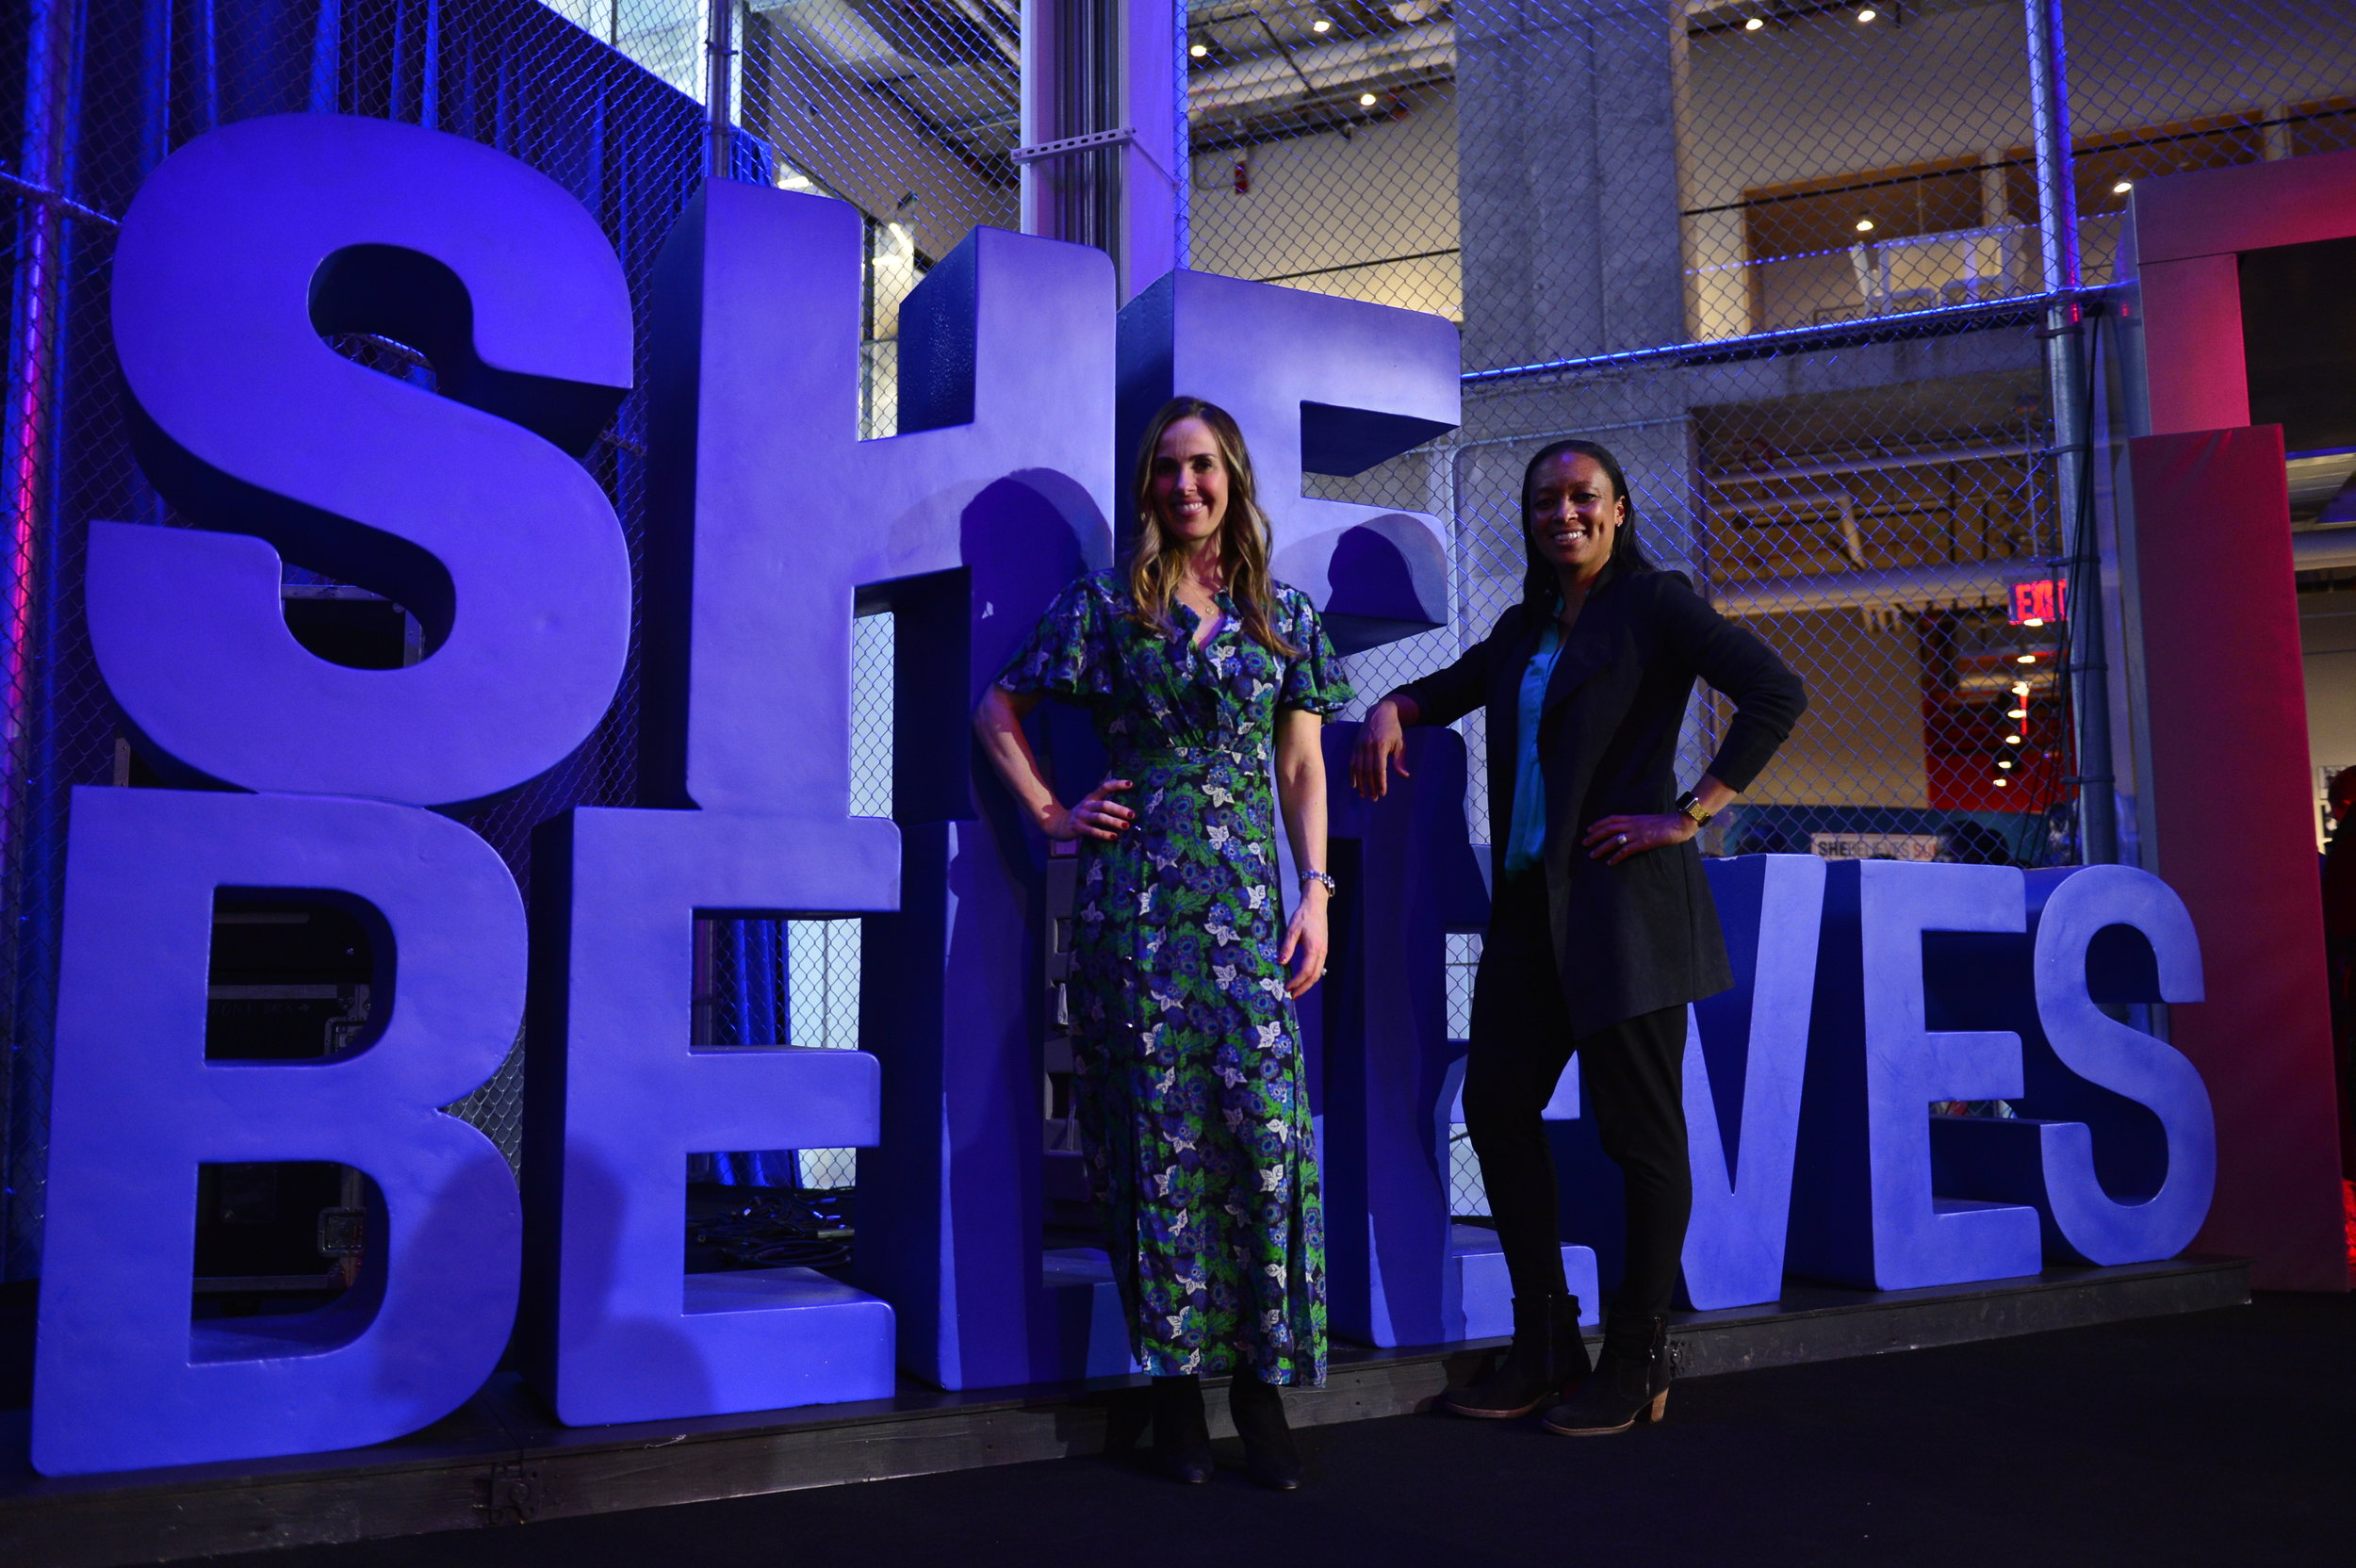 Heather Mitts and Angela Hucles, Co-Founders of Ceres Platinum Group and both former U.S. WNT players, exemplify the #SheBelieves ethos.